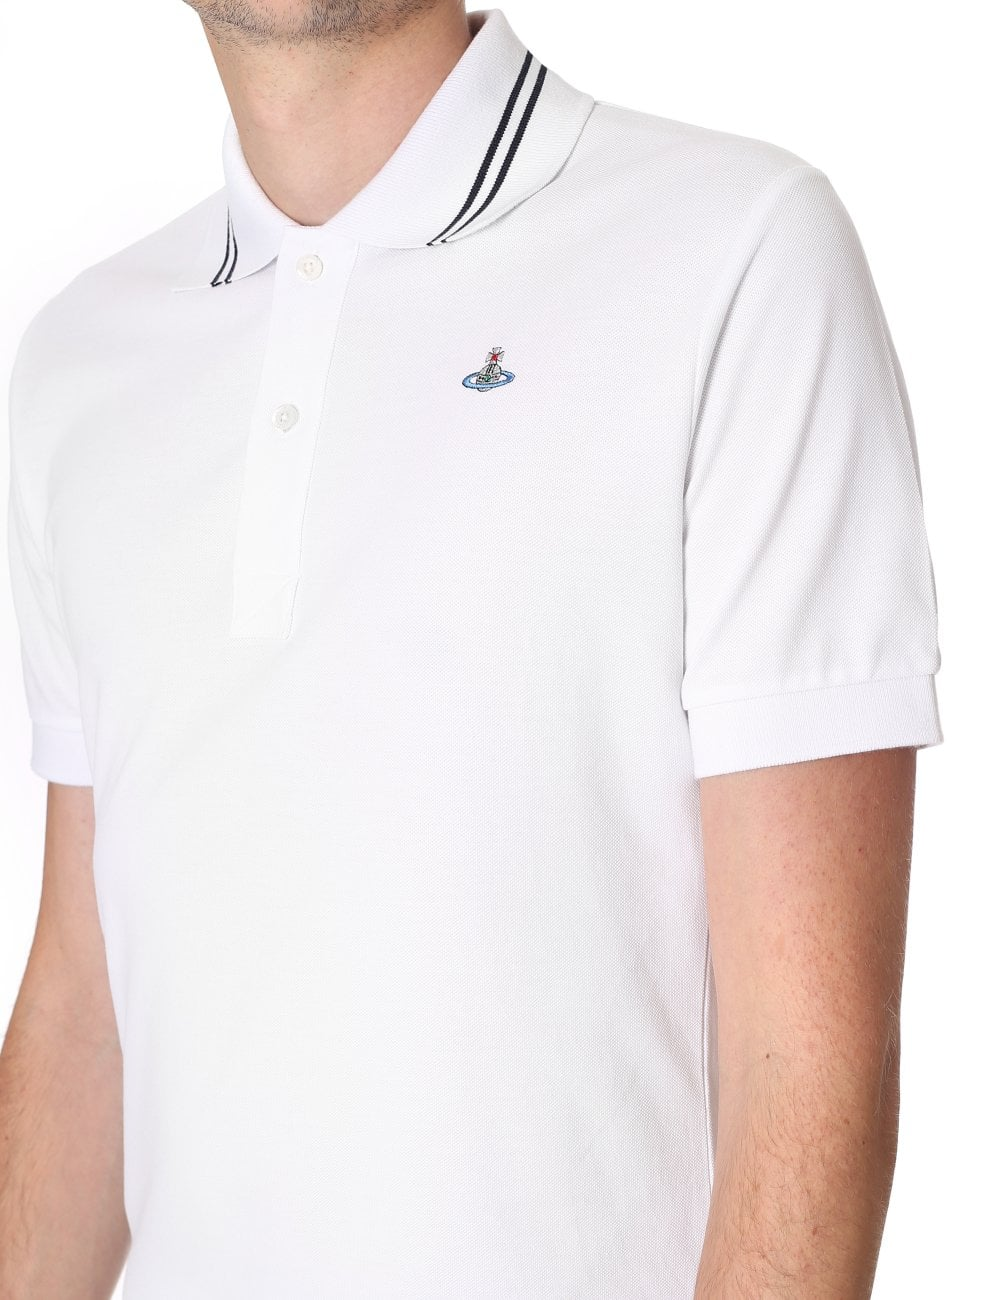 Vivienne Westwood Tipped Collar Men s Short Sleeve Polo f156daa39